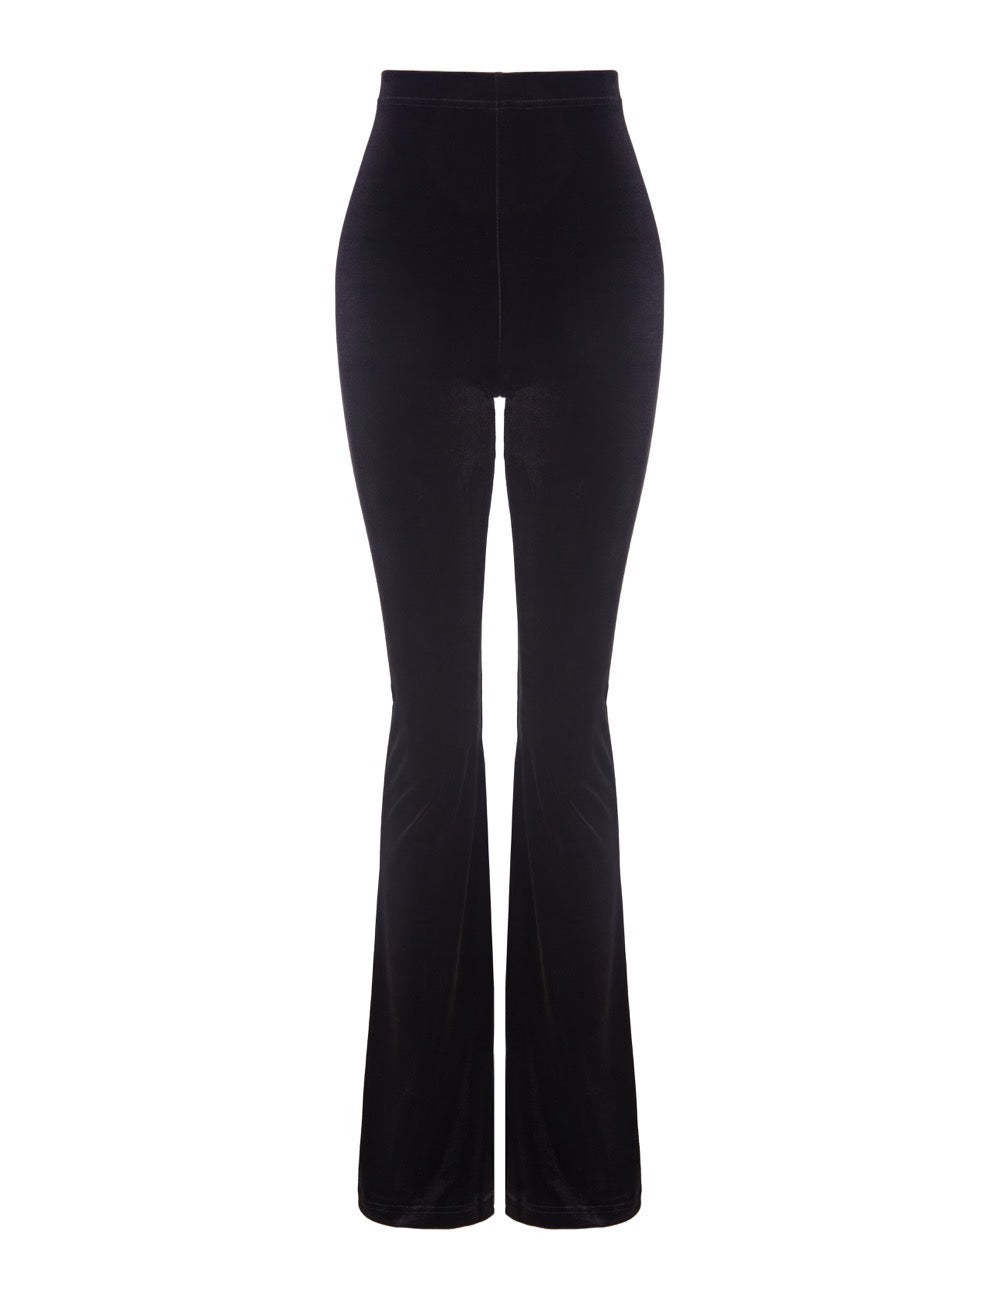 black velvet flares sas womens clothing uk